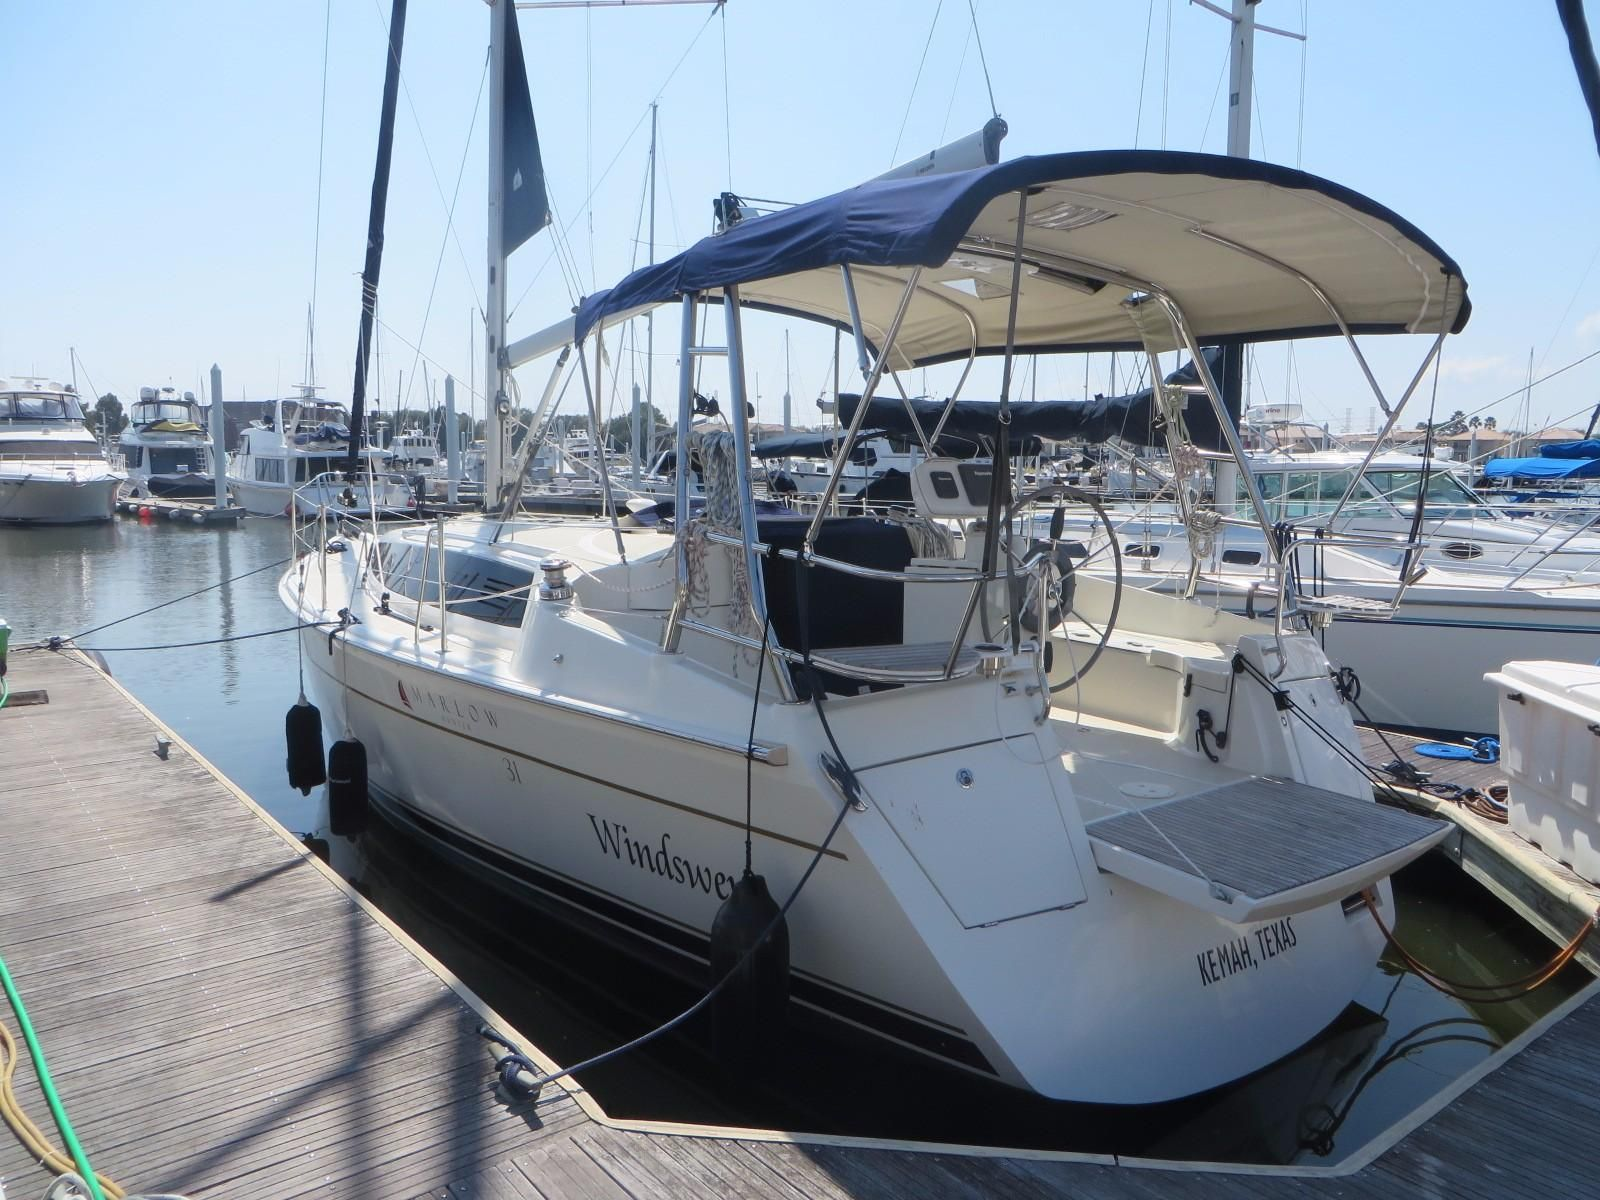 2015 marlow hunter 31 sail boat for sale for Sailboat outboard motor size calculator